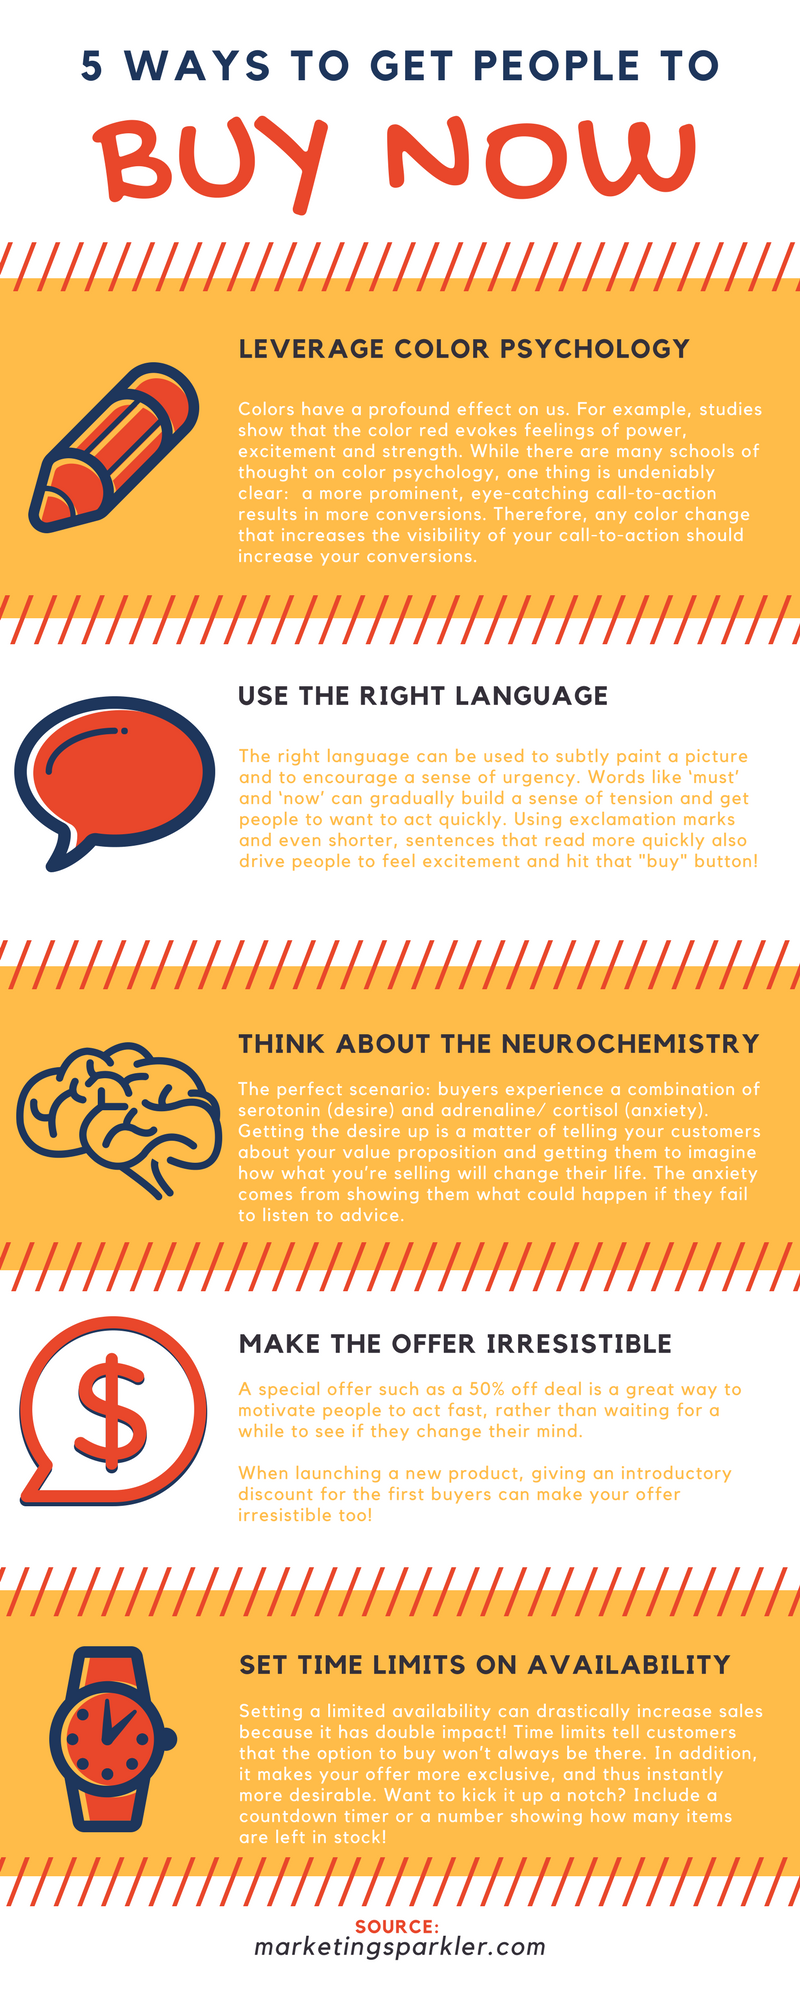 5 ways to get people to buy now infographic by Marketing Sparkler